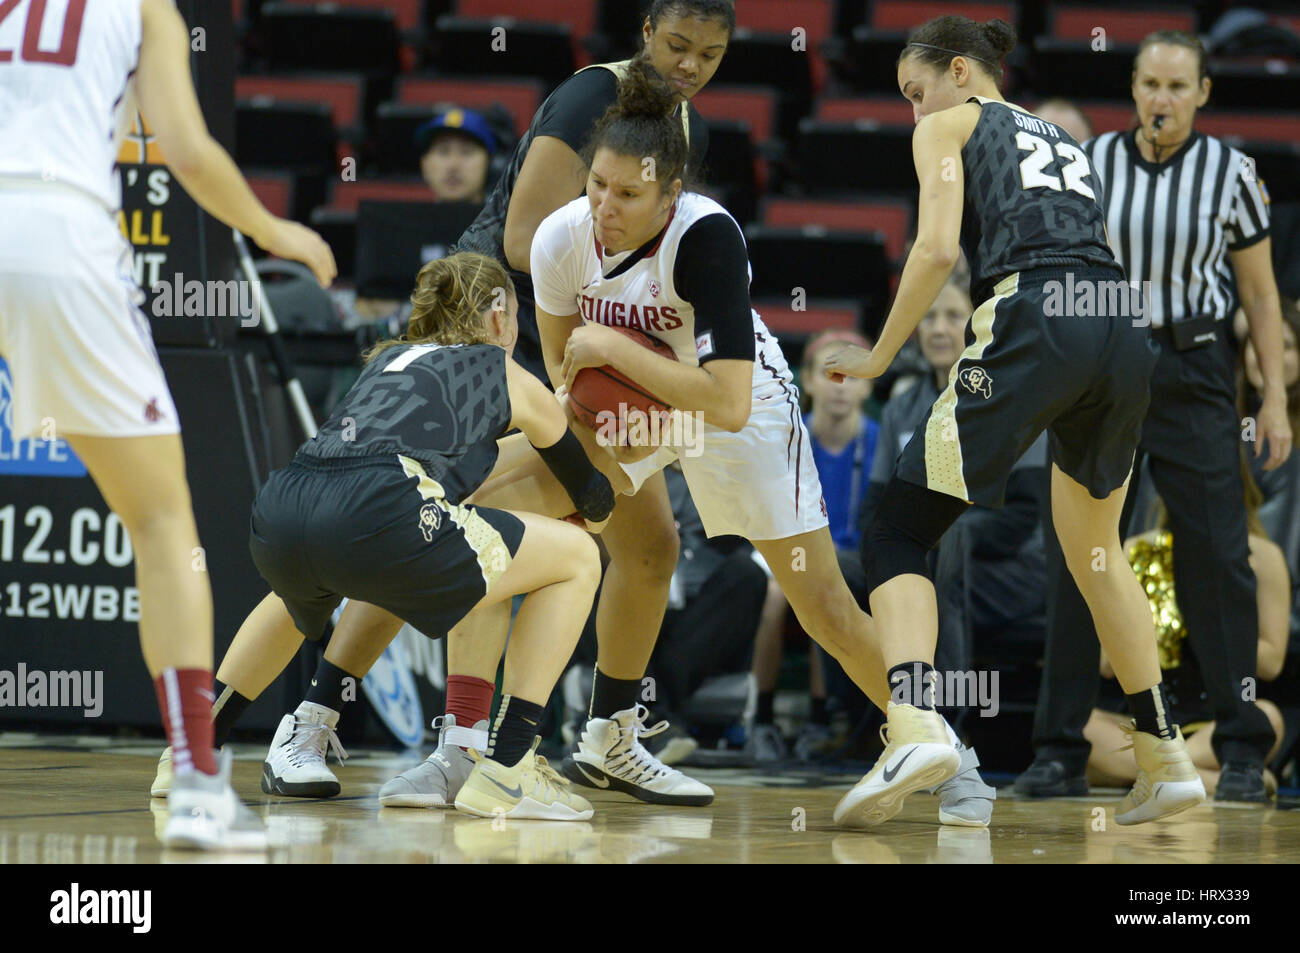 Seattle, WA, USA. 2nd Mar, 2017. WSU's Nike McClure (21) finds herself surrounded by Colorado defenders during - Stock Image